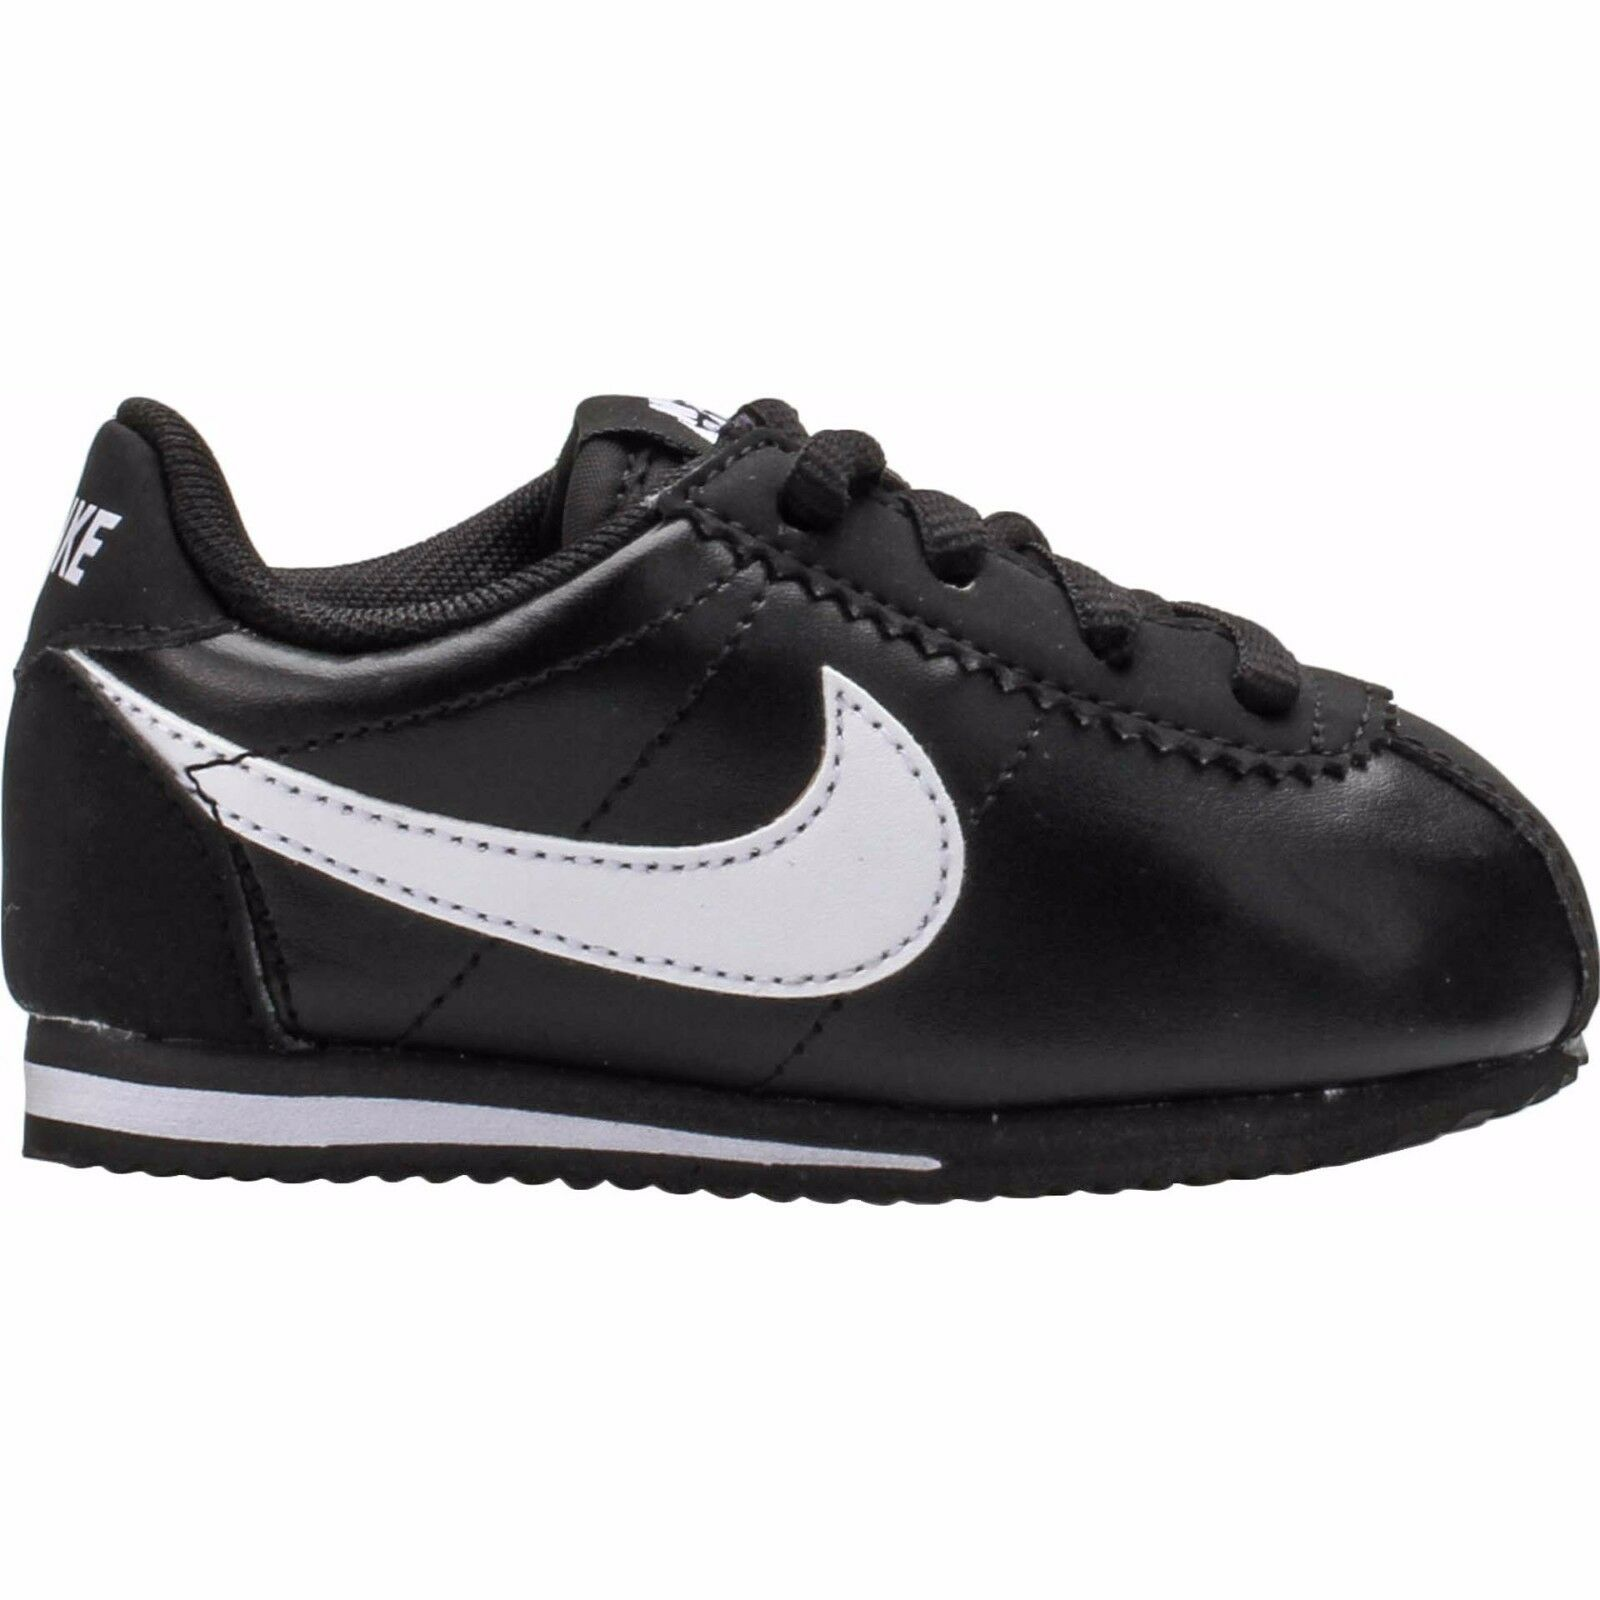 New Nike Baby Nike Cortez Toddlers Shoes 001 Black White